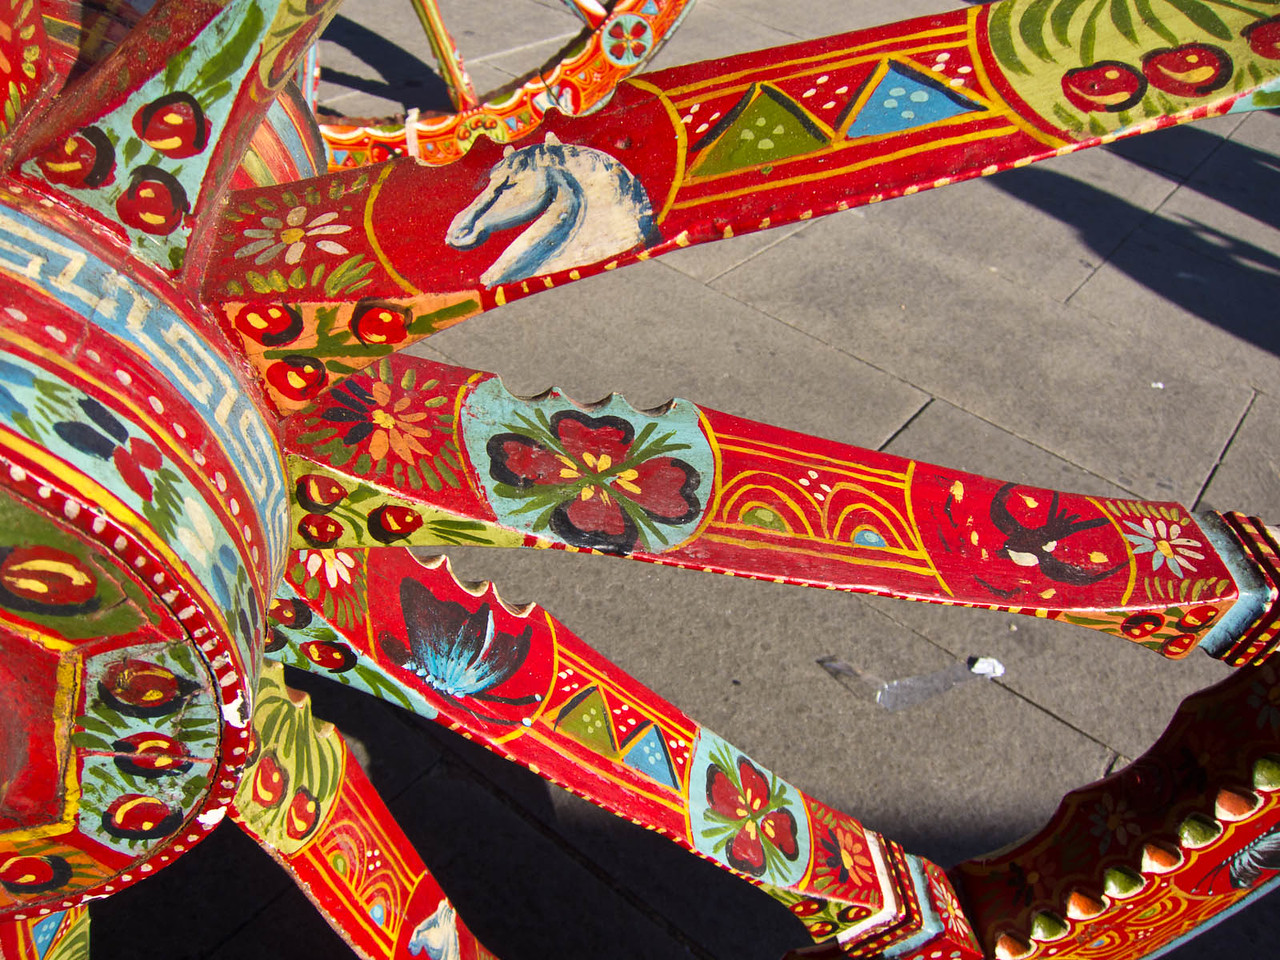 Hand painted festival wagon